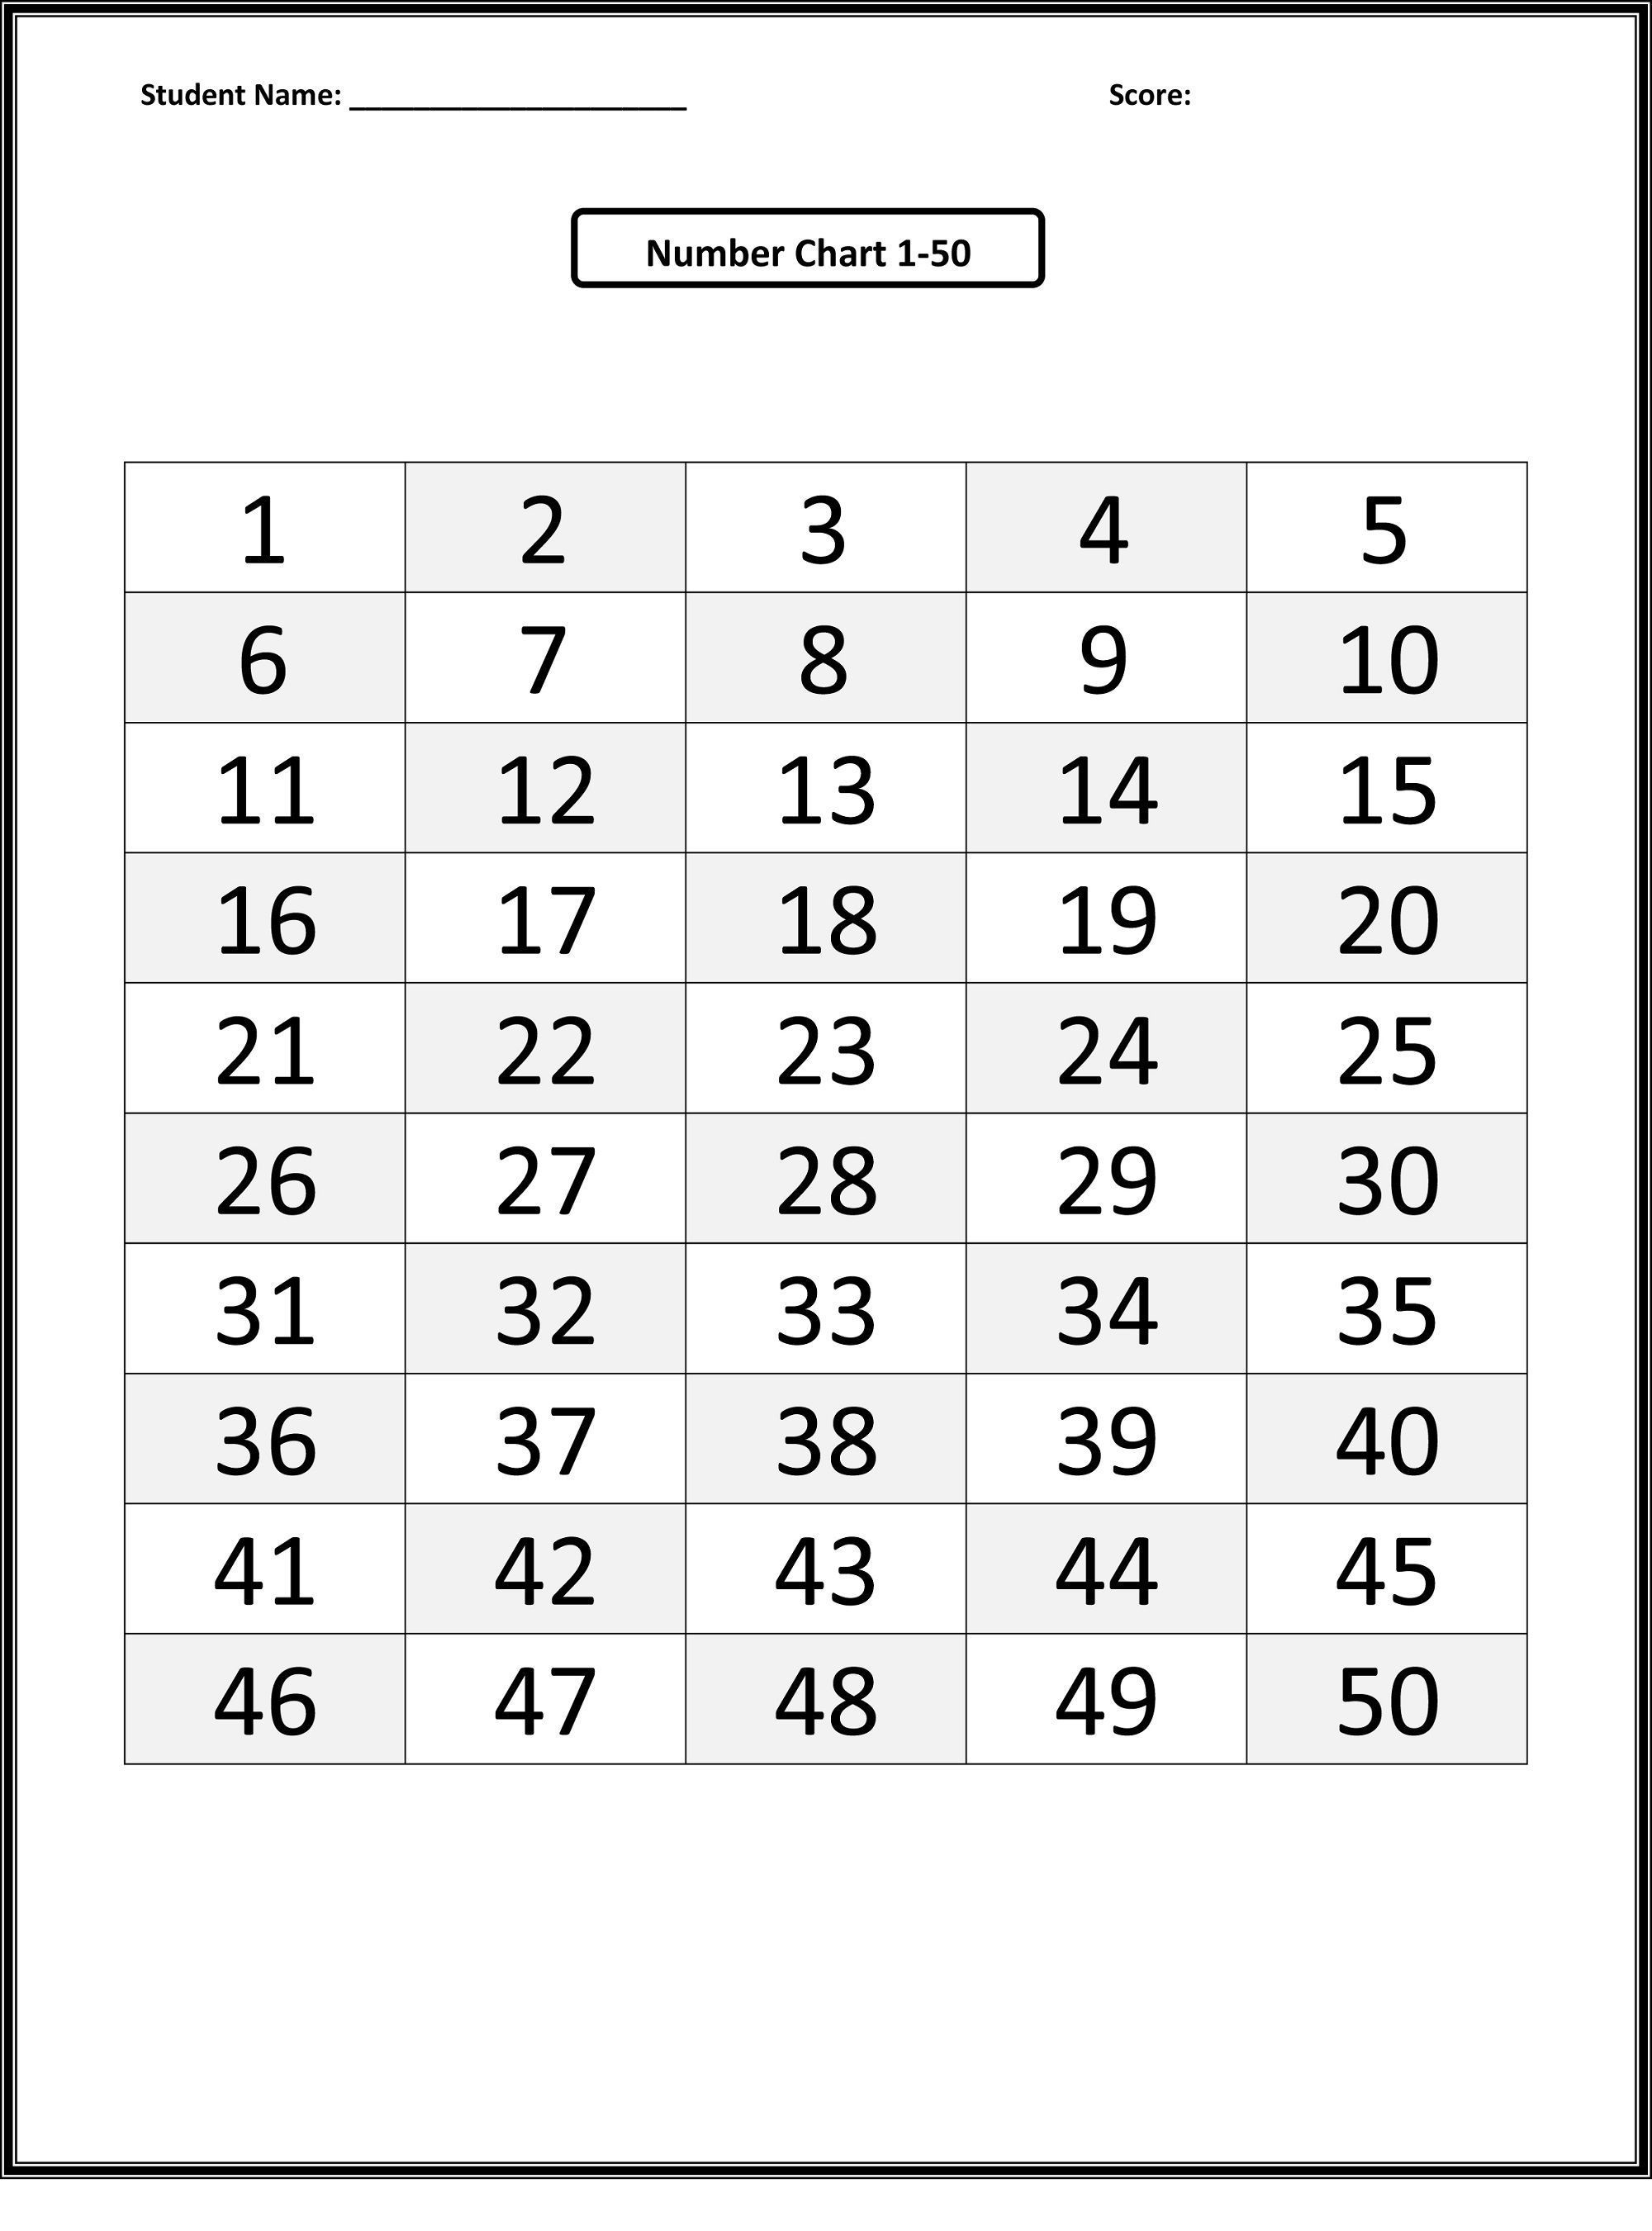 Number Chart 1-50 For Kids In 2020 (With Images) | Number